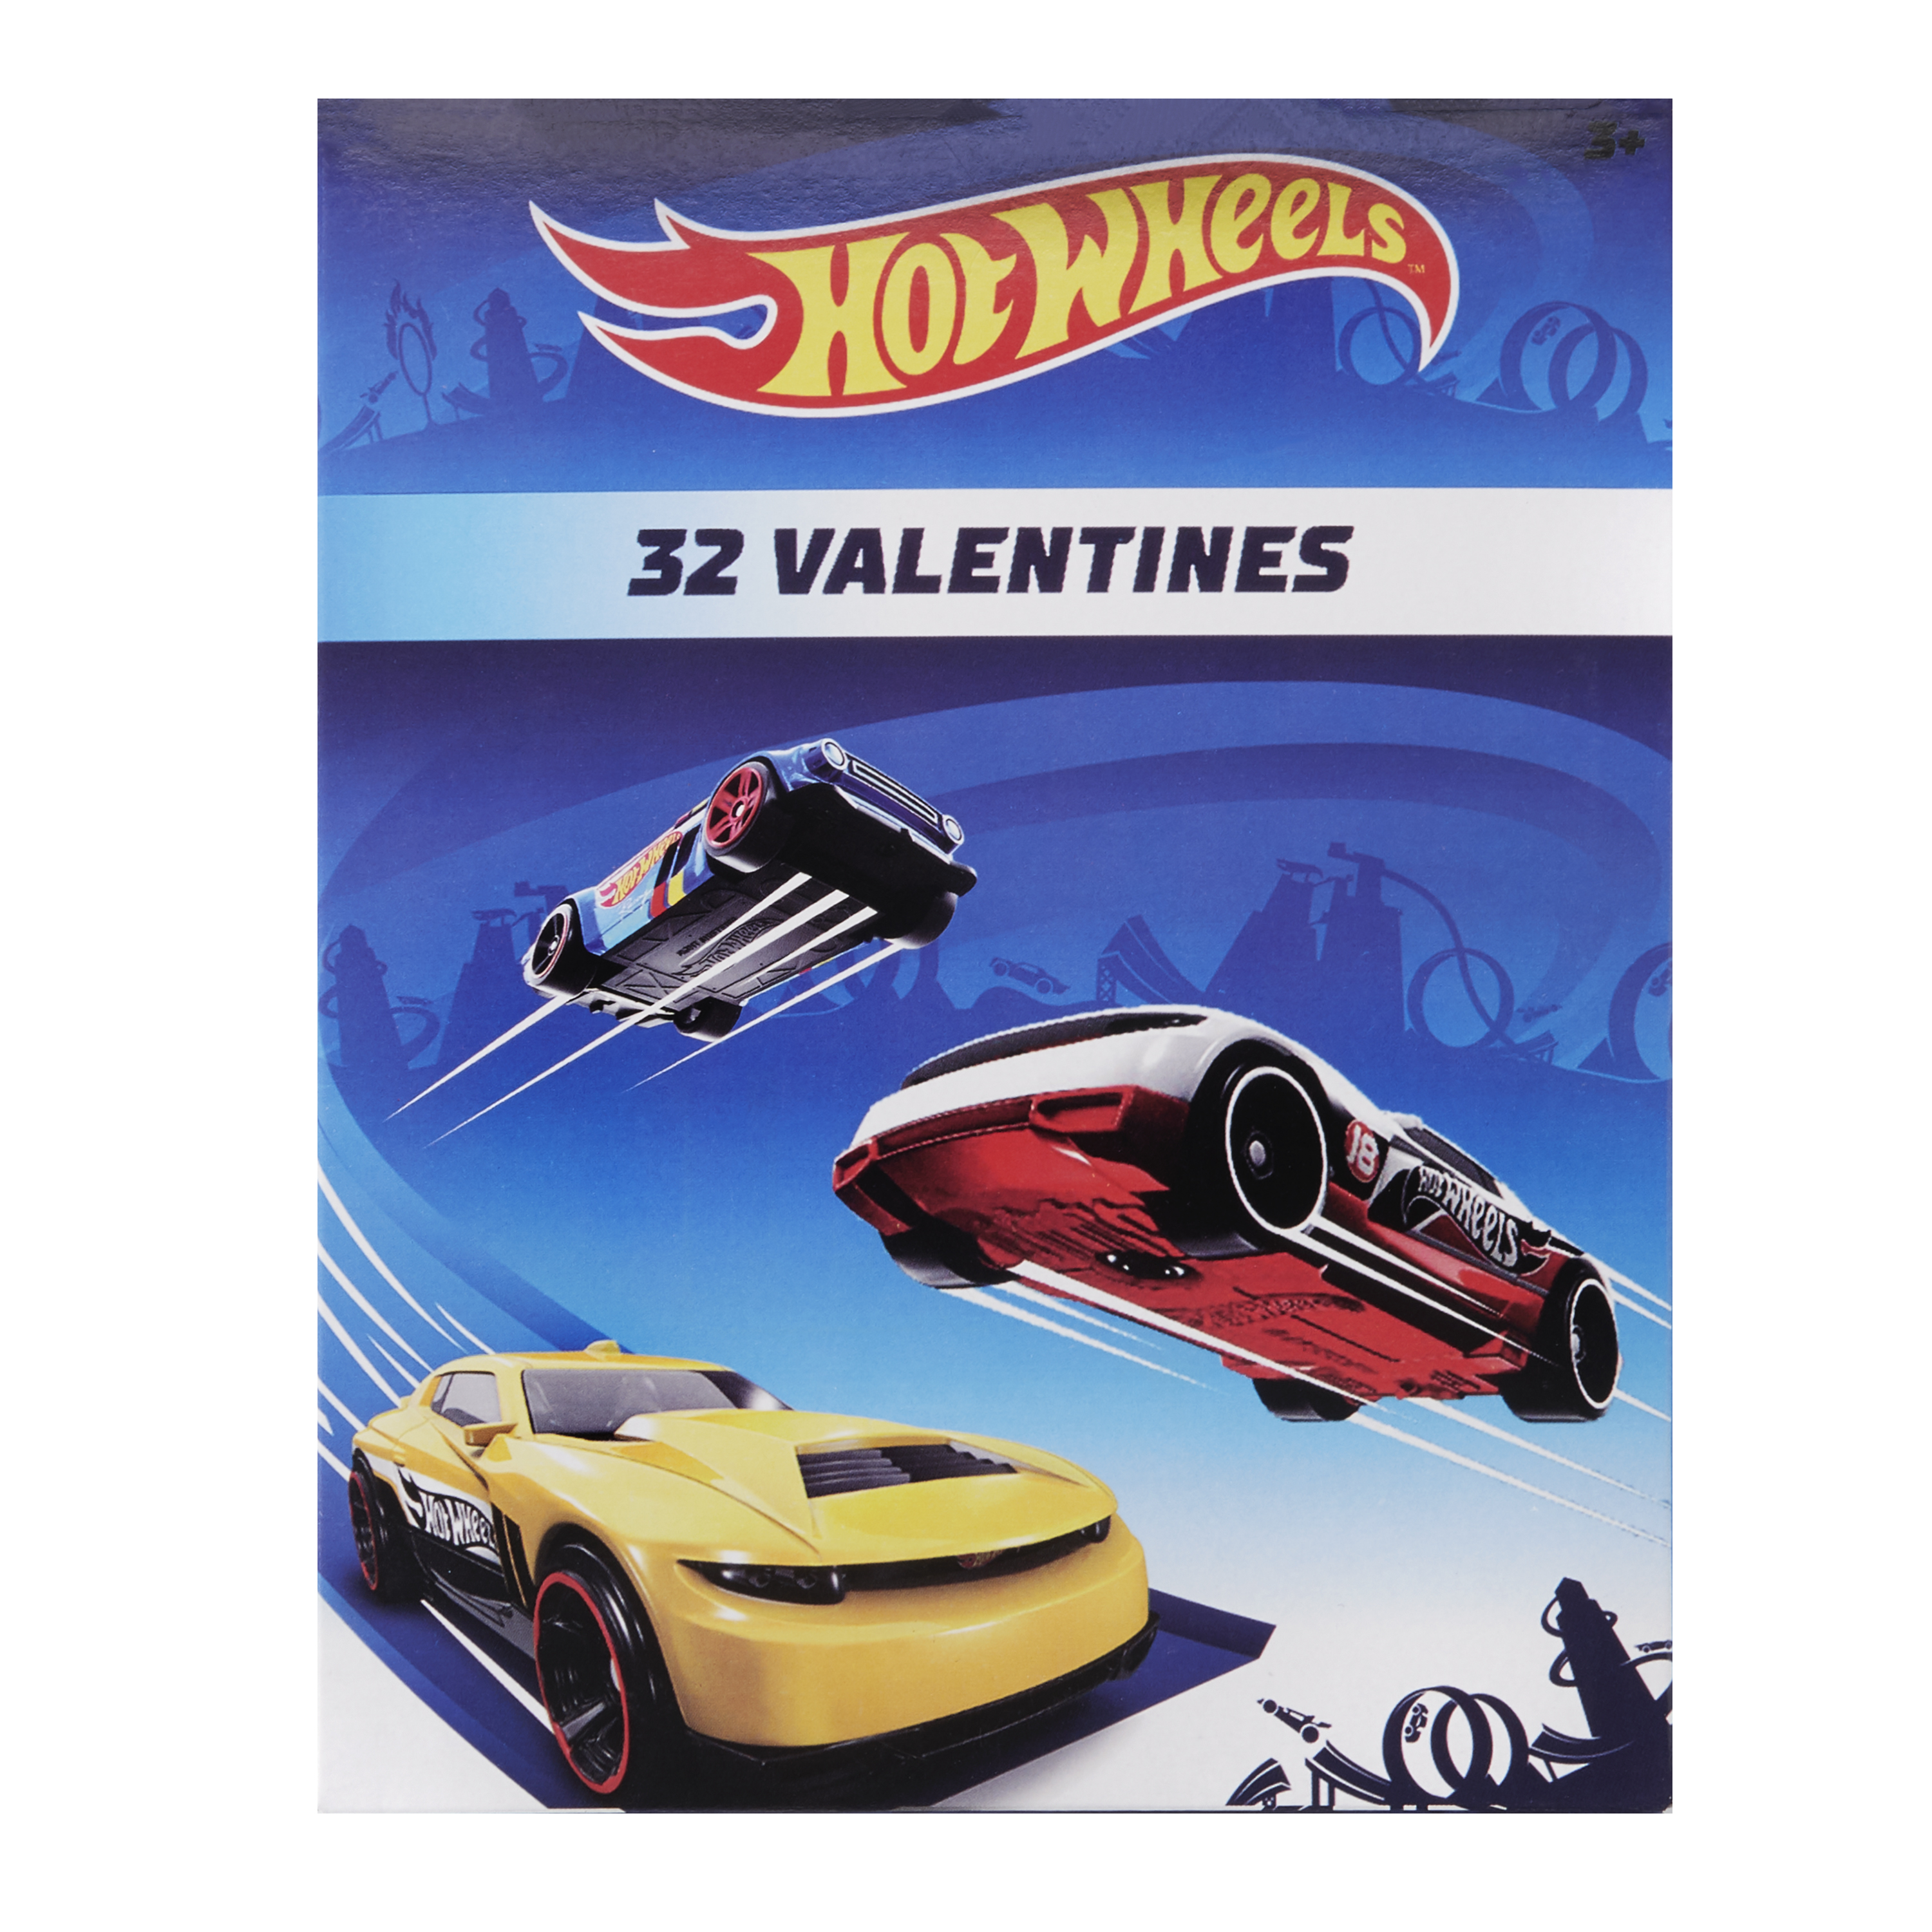 Hot Wheels Valentine's Day Cards, 32 Count